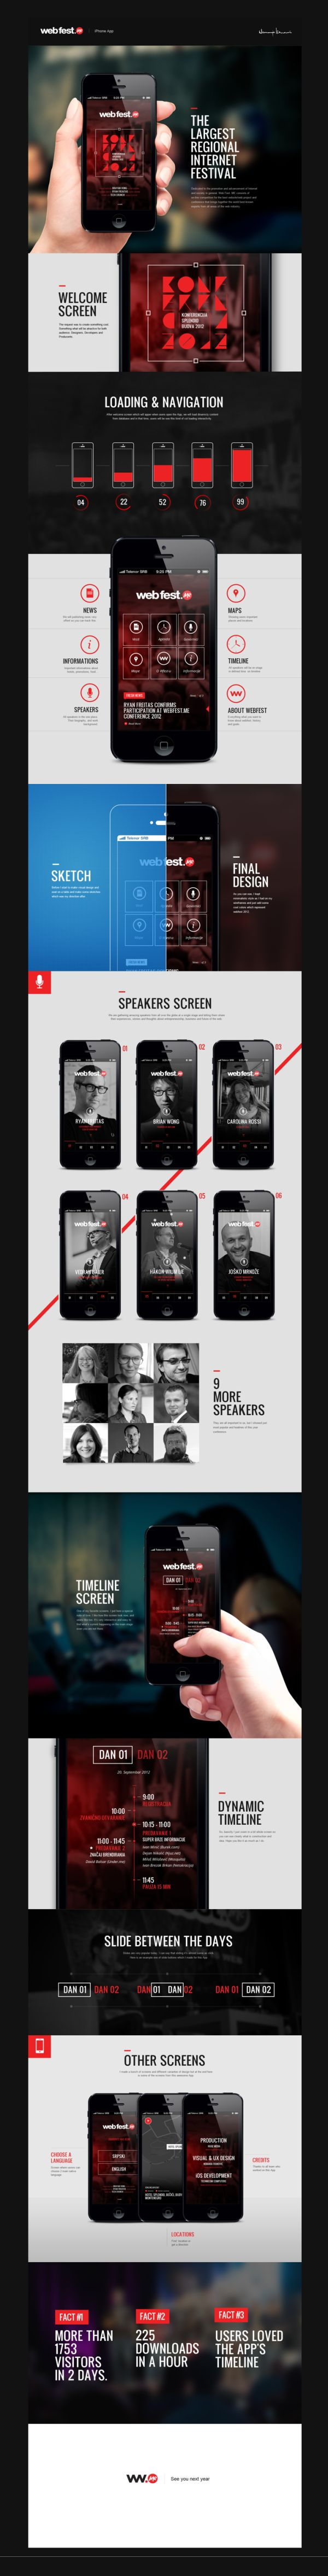 another killer mobile... WebFest - #iPhone #App by Nemanja Iv... on Twitpic